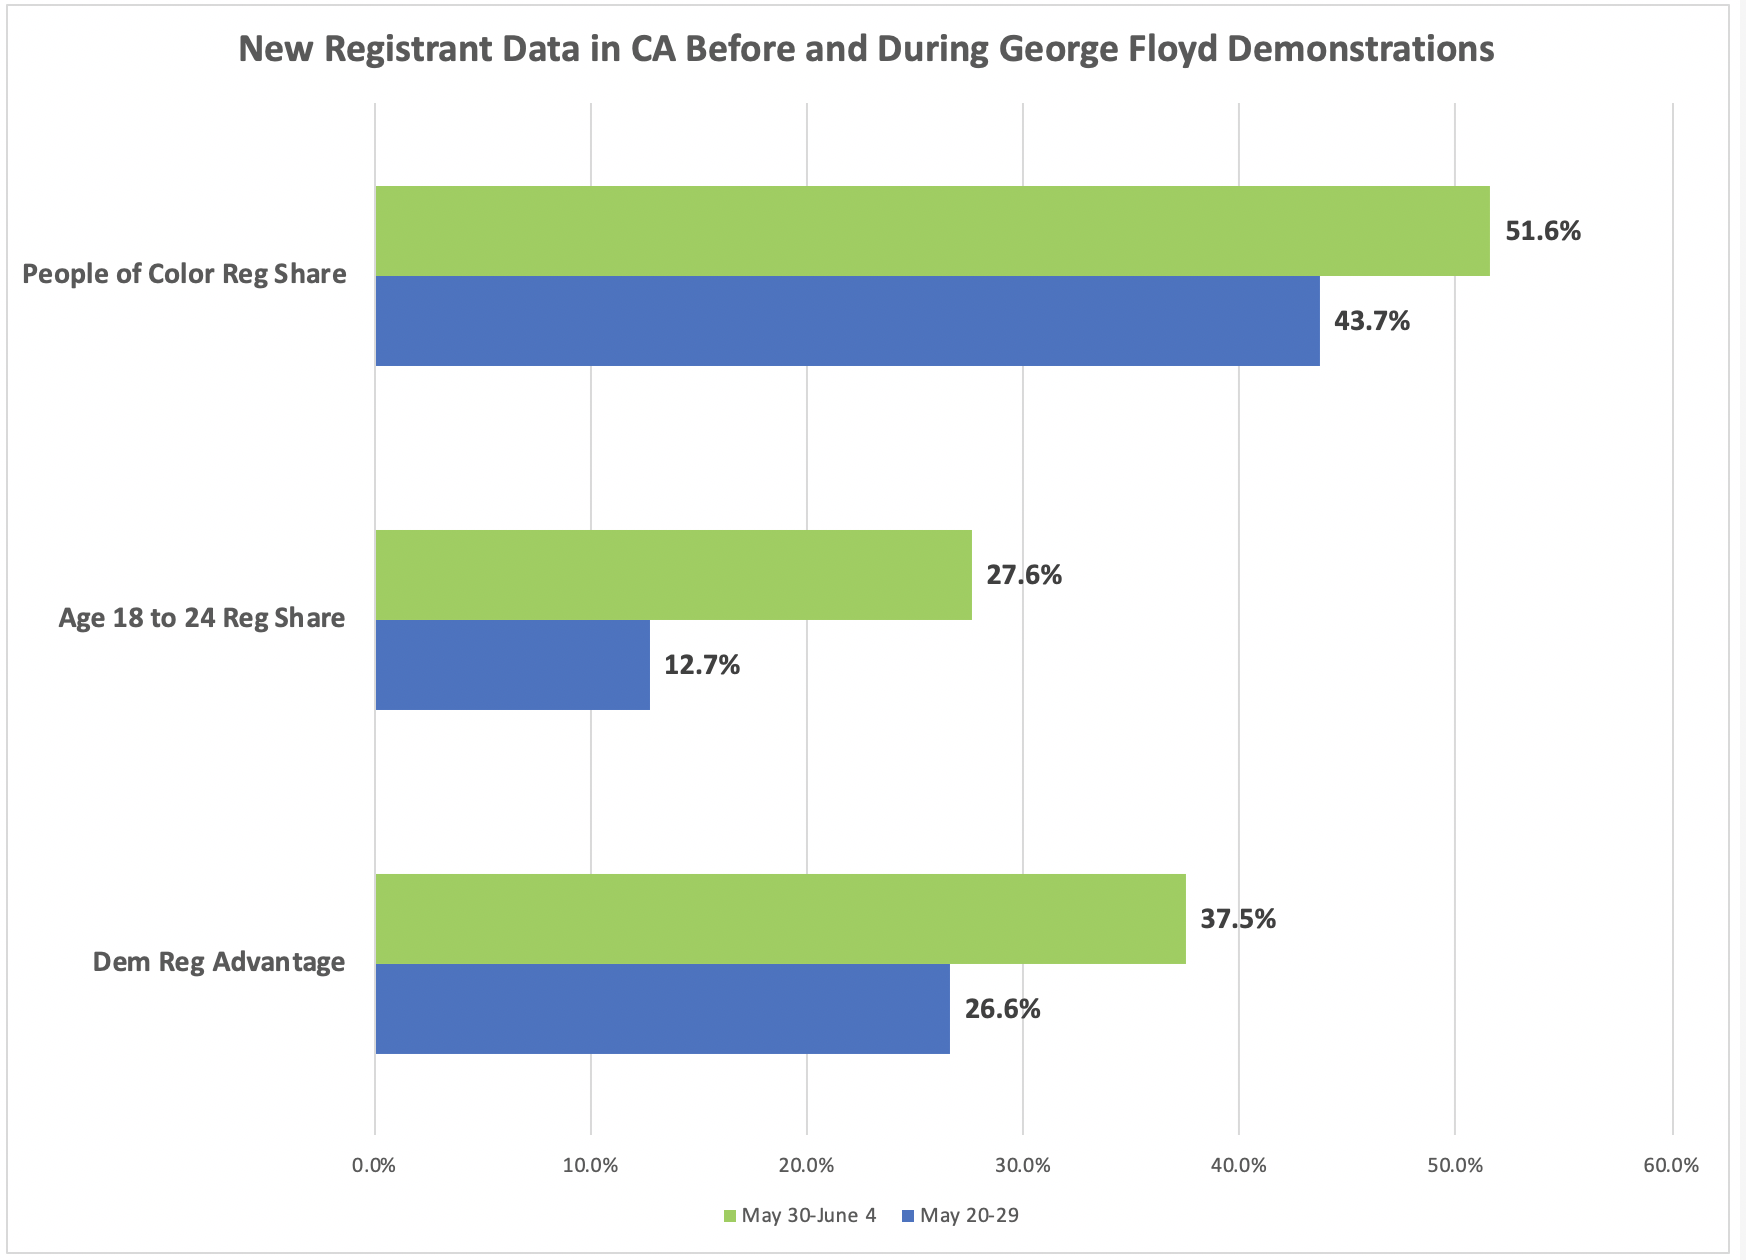 Demographics of new registrants before and after start of George Floyd protests in California